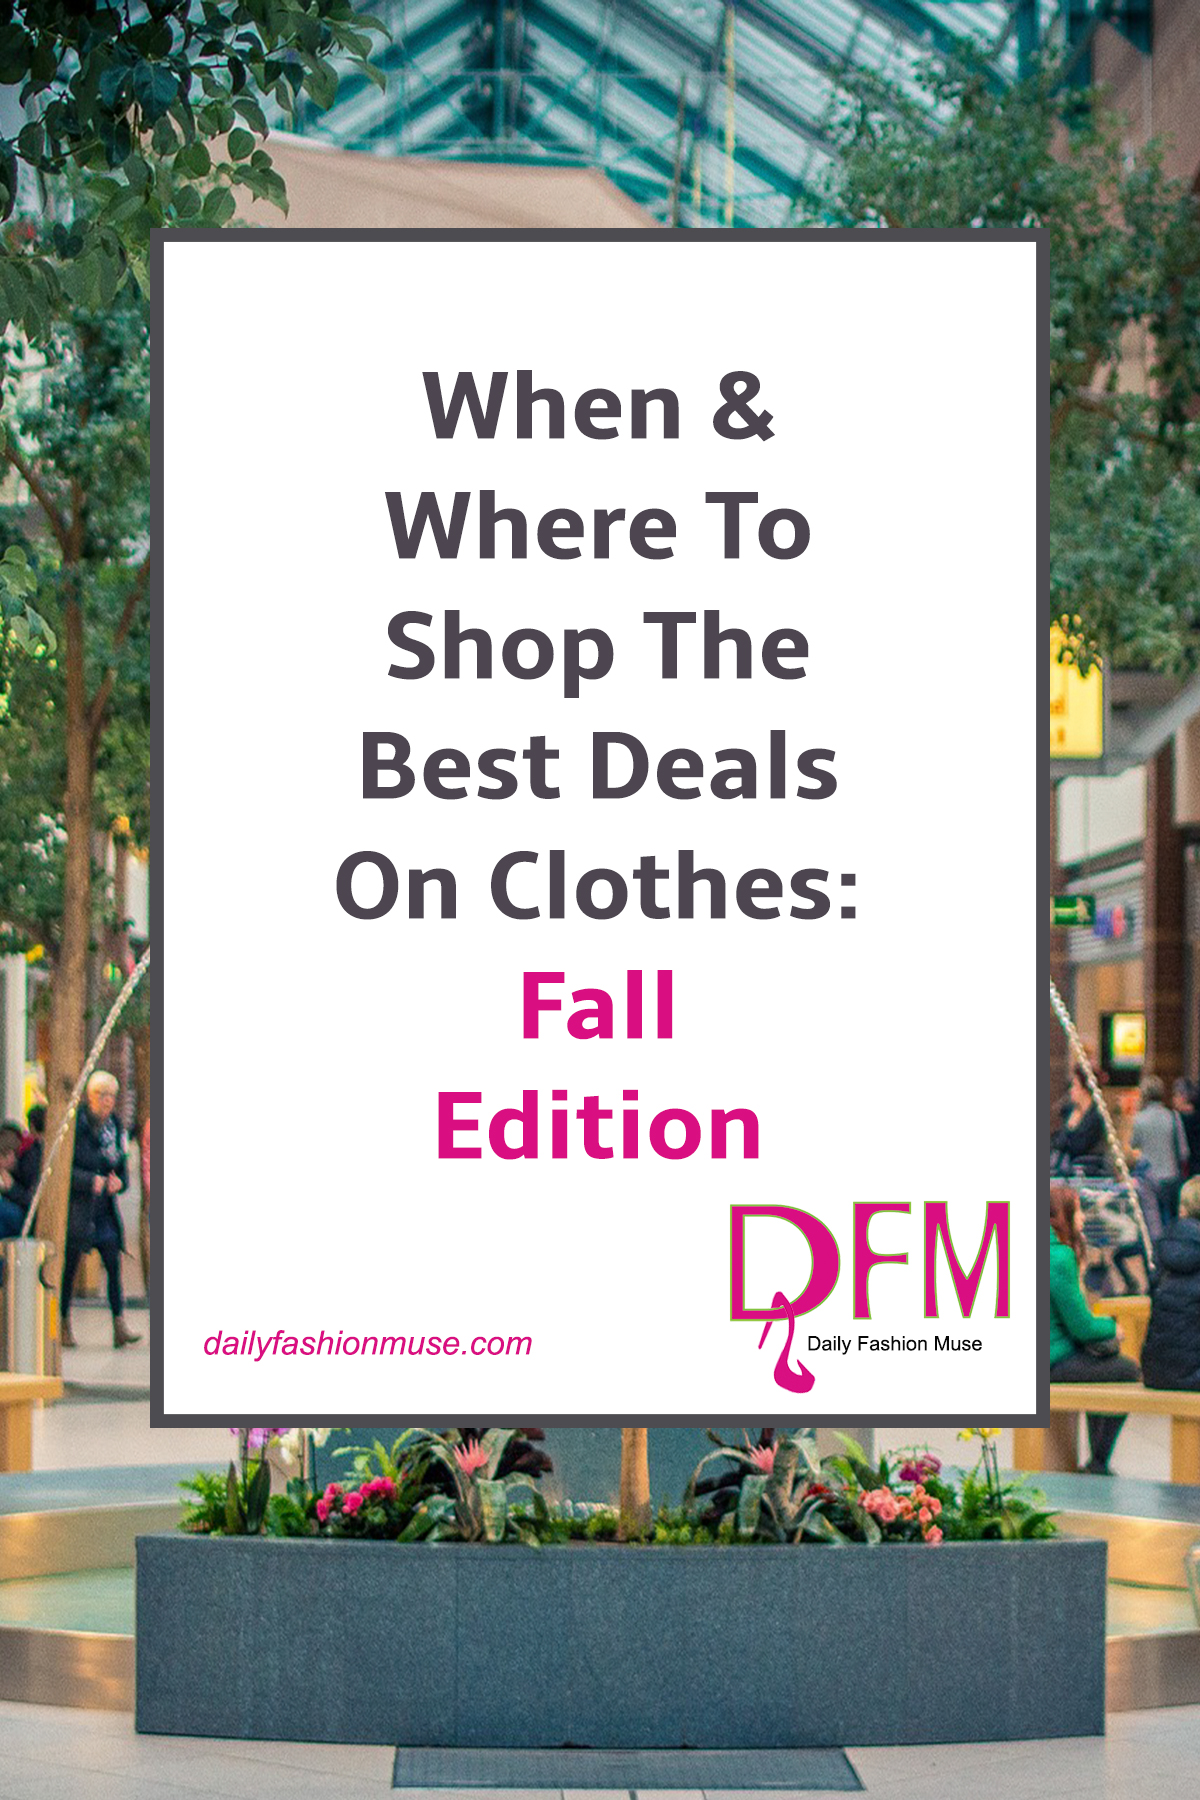 Before you begin that back-to-school shopping trip, stop for a minute to read this post. Find out when is the best time to score the best deals for fall on clothes. Make your money go further now that you are in the know.